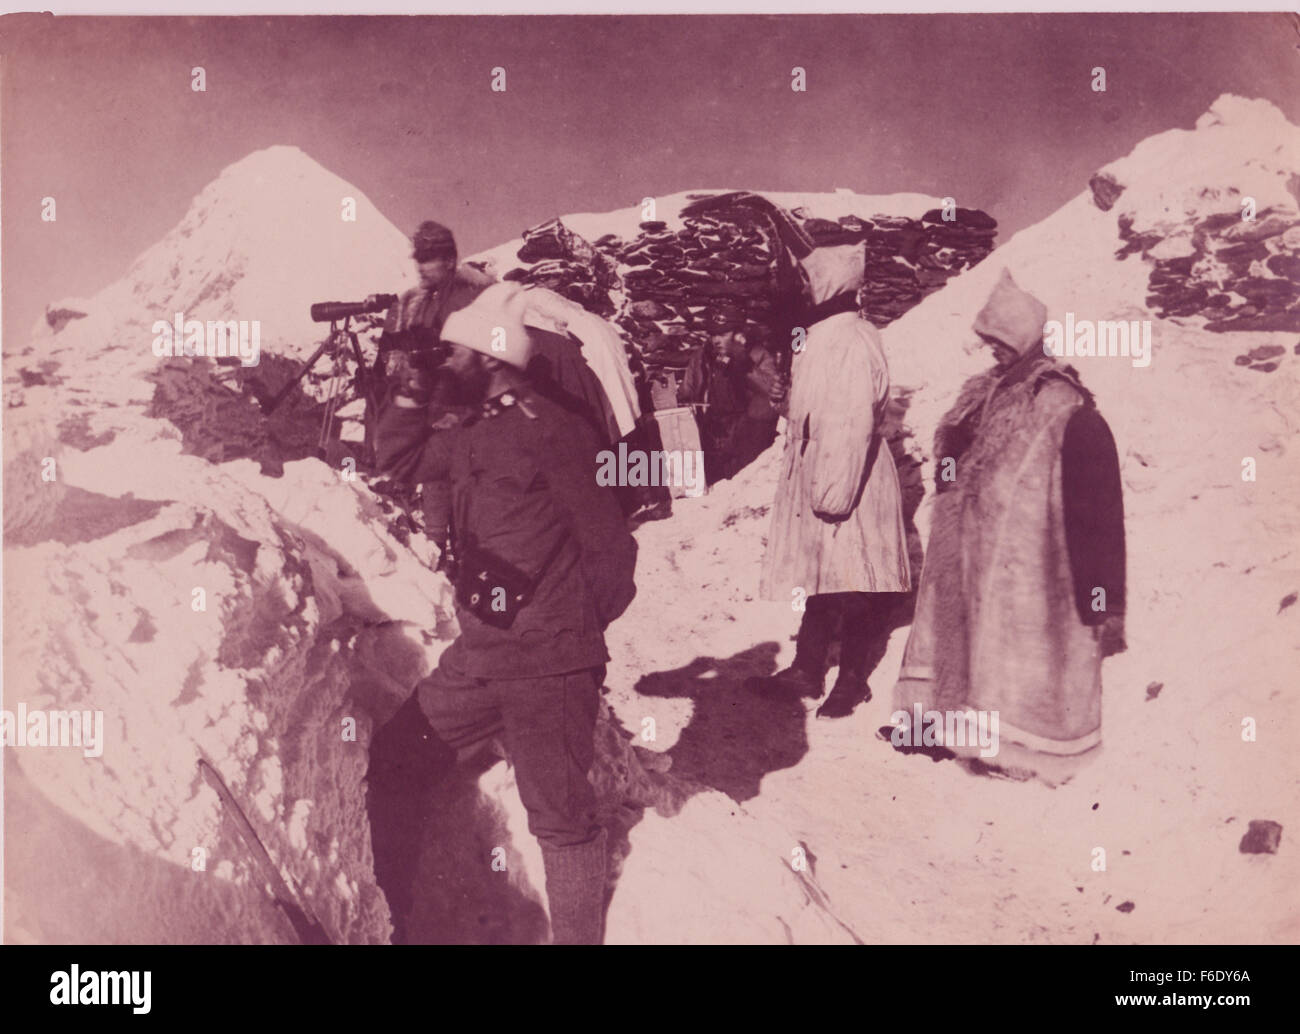 729. Italian Mountain Troops Ortler Alps,South Tyrol 1944 Stock Photo